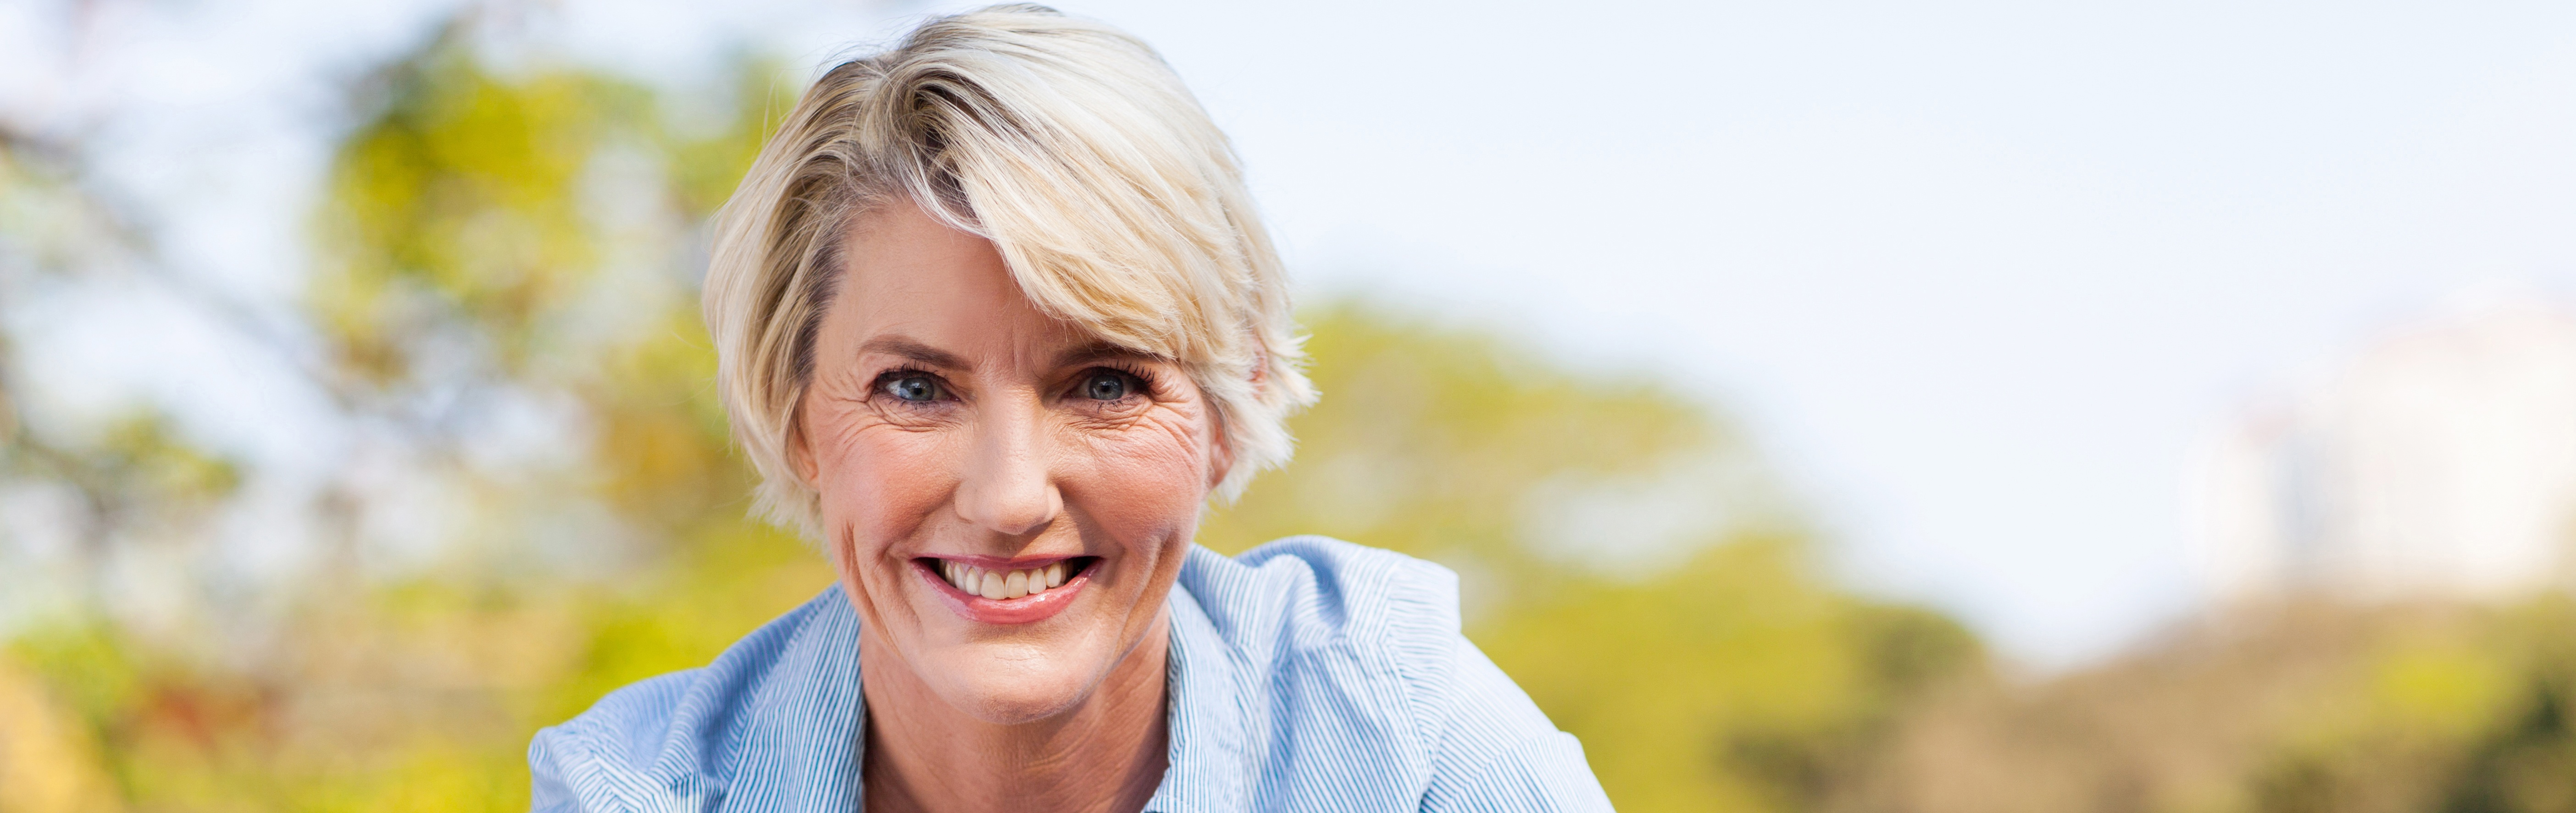 What Causes Wrinkles & How to Treat Wrinkles